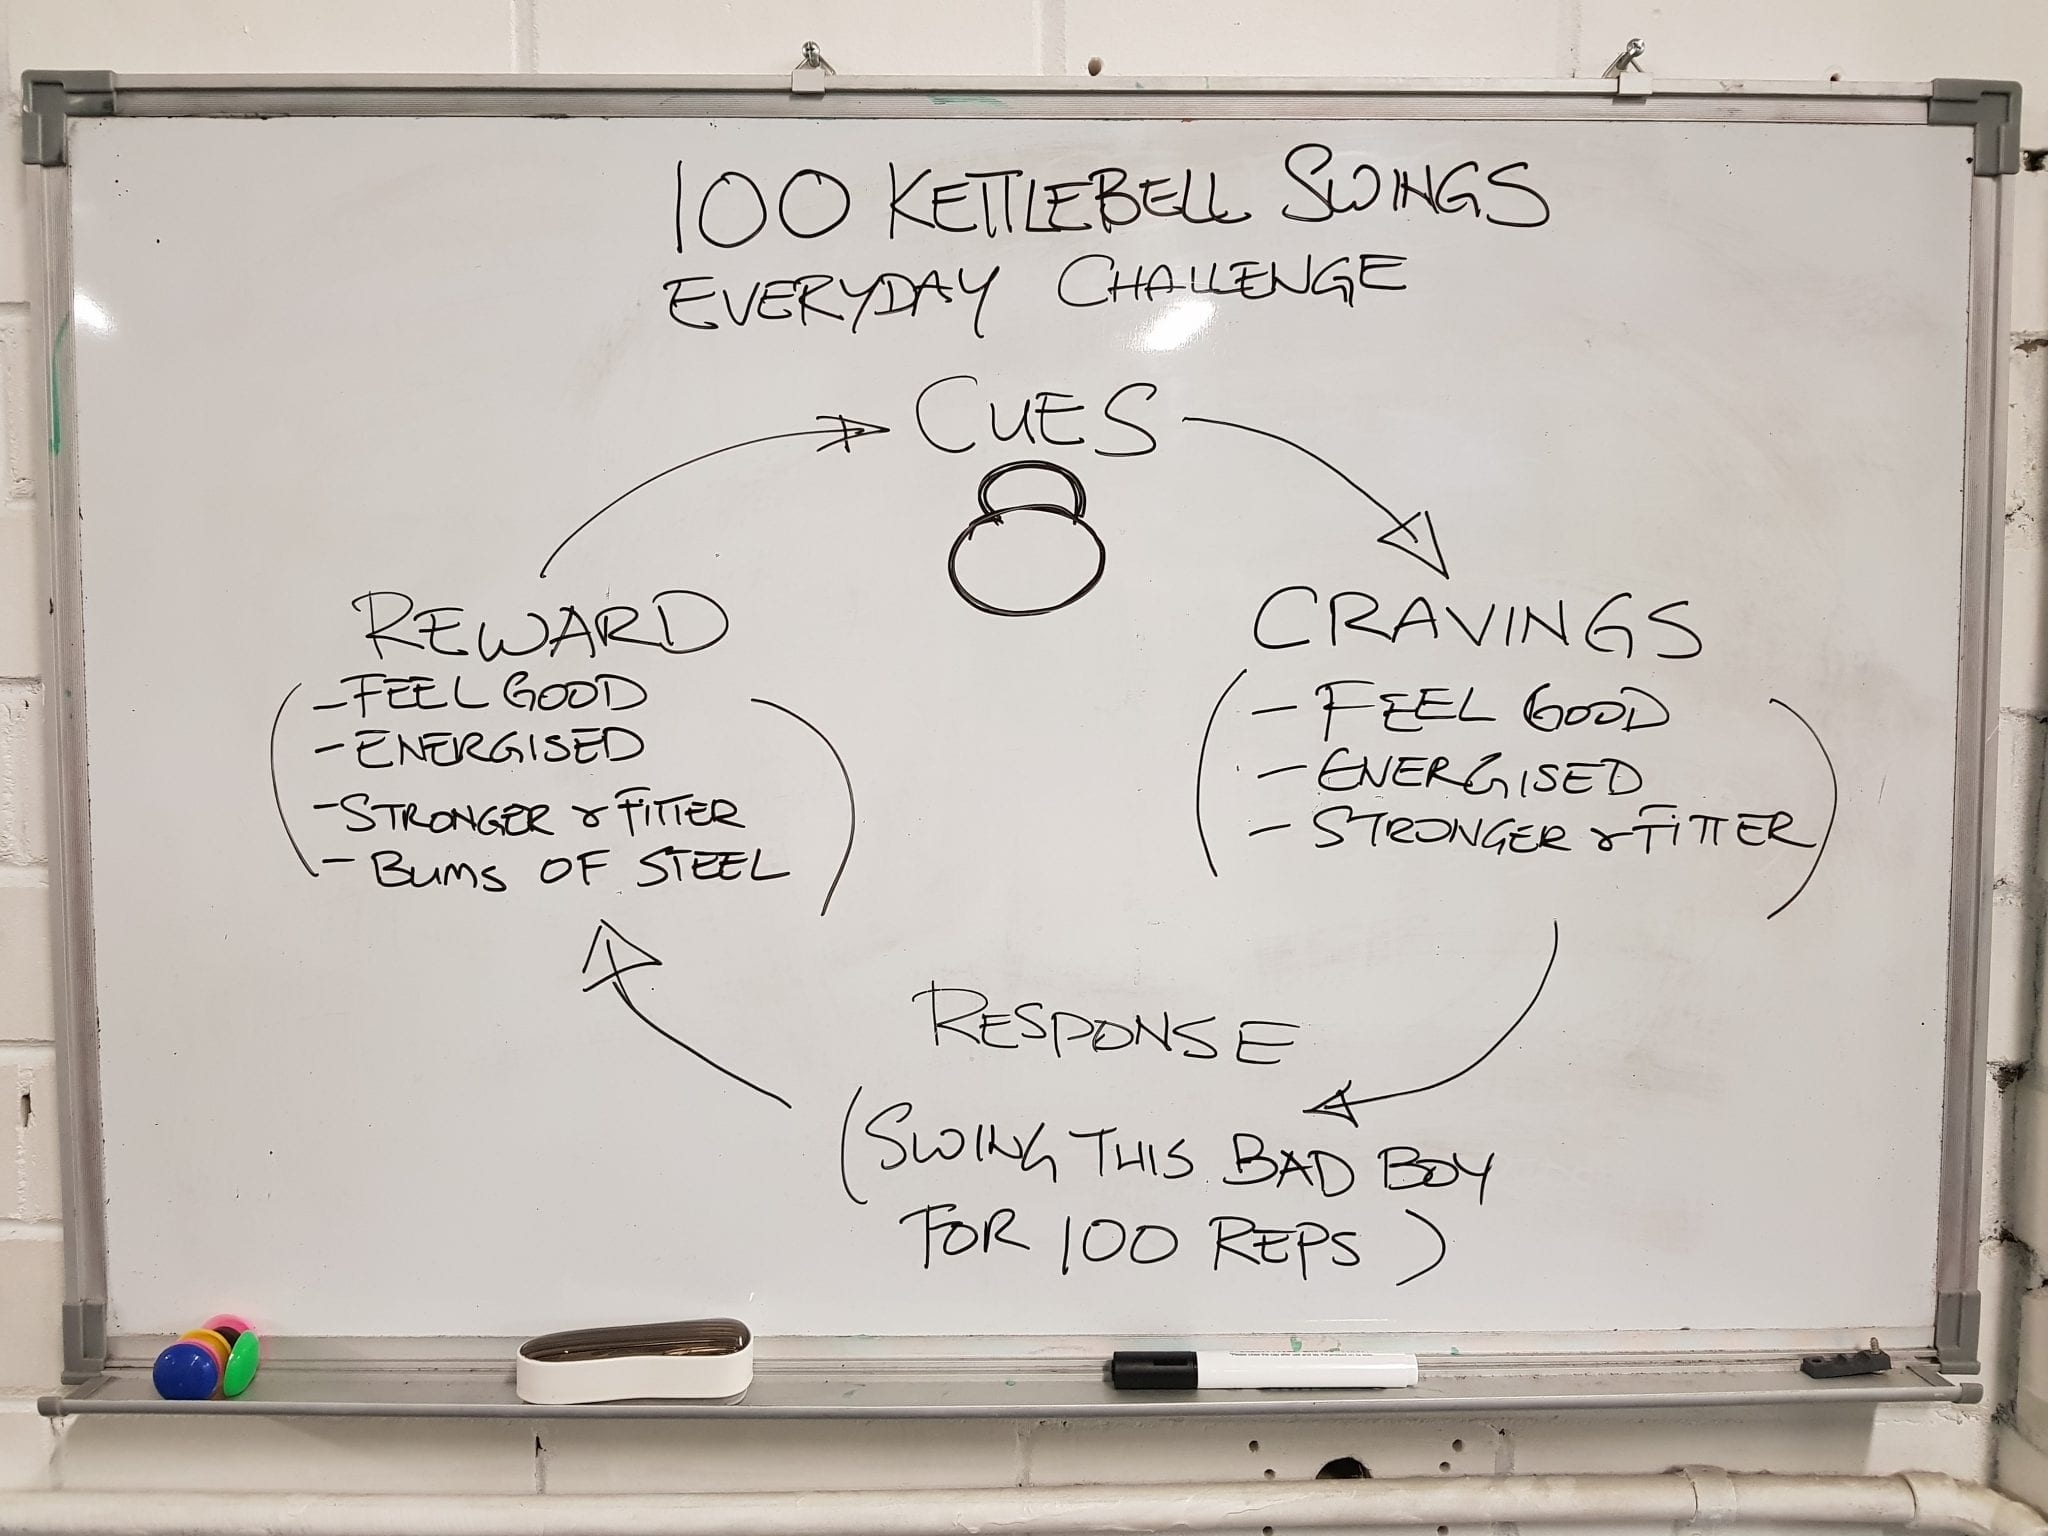 100 kettlebell swings everyday challenge